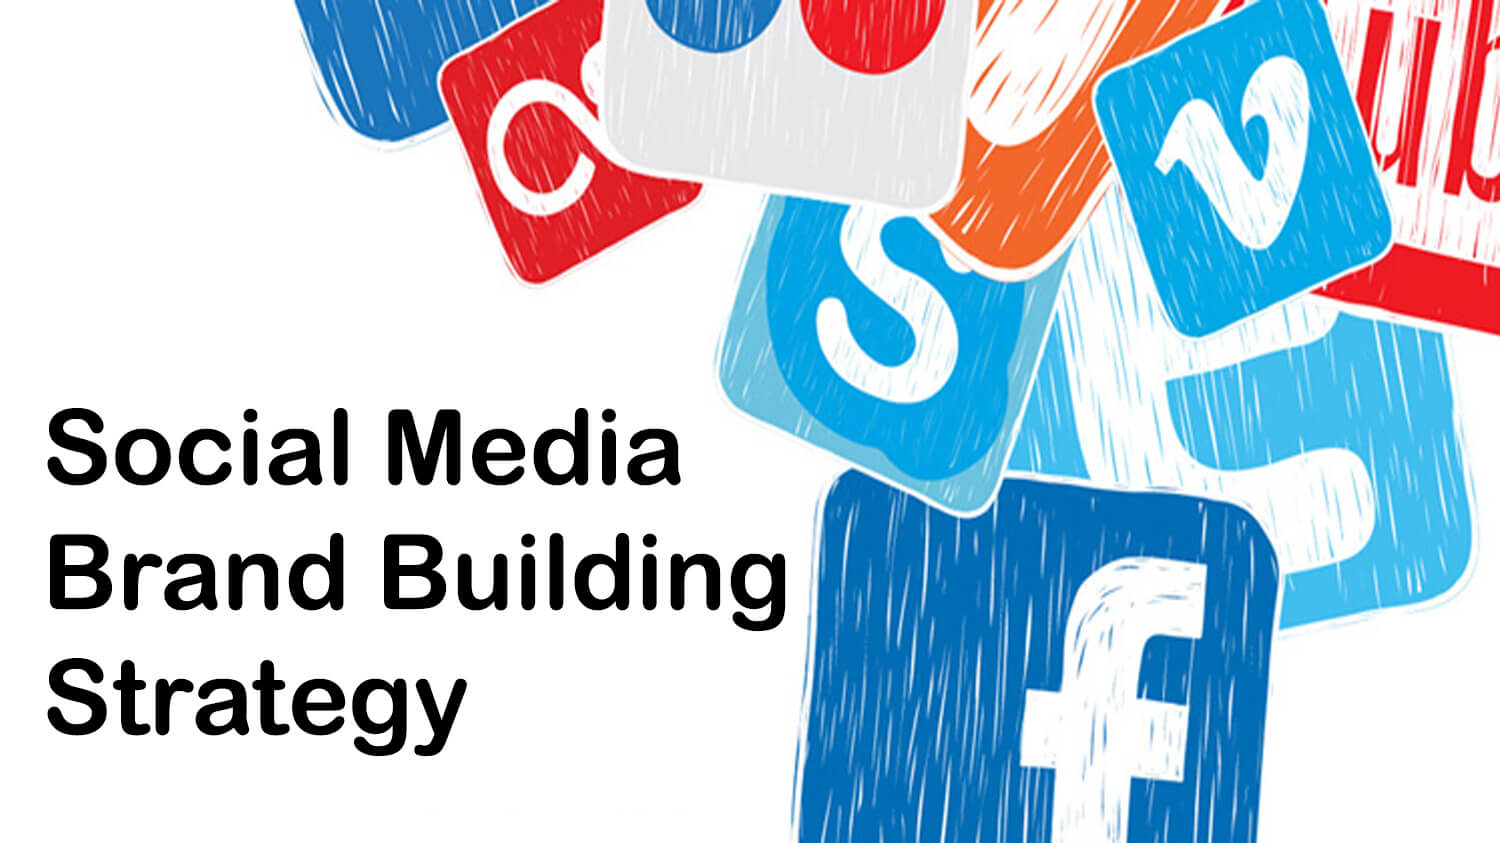 Launch a Social Media Brand Building Strategy